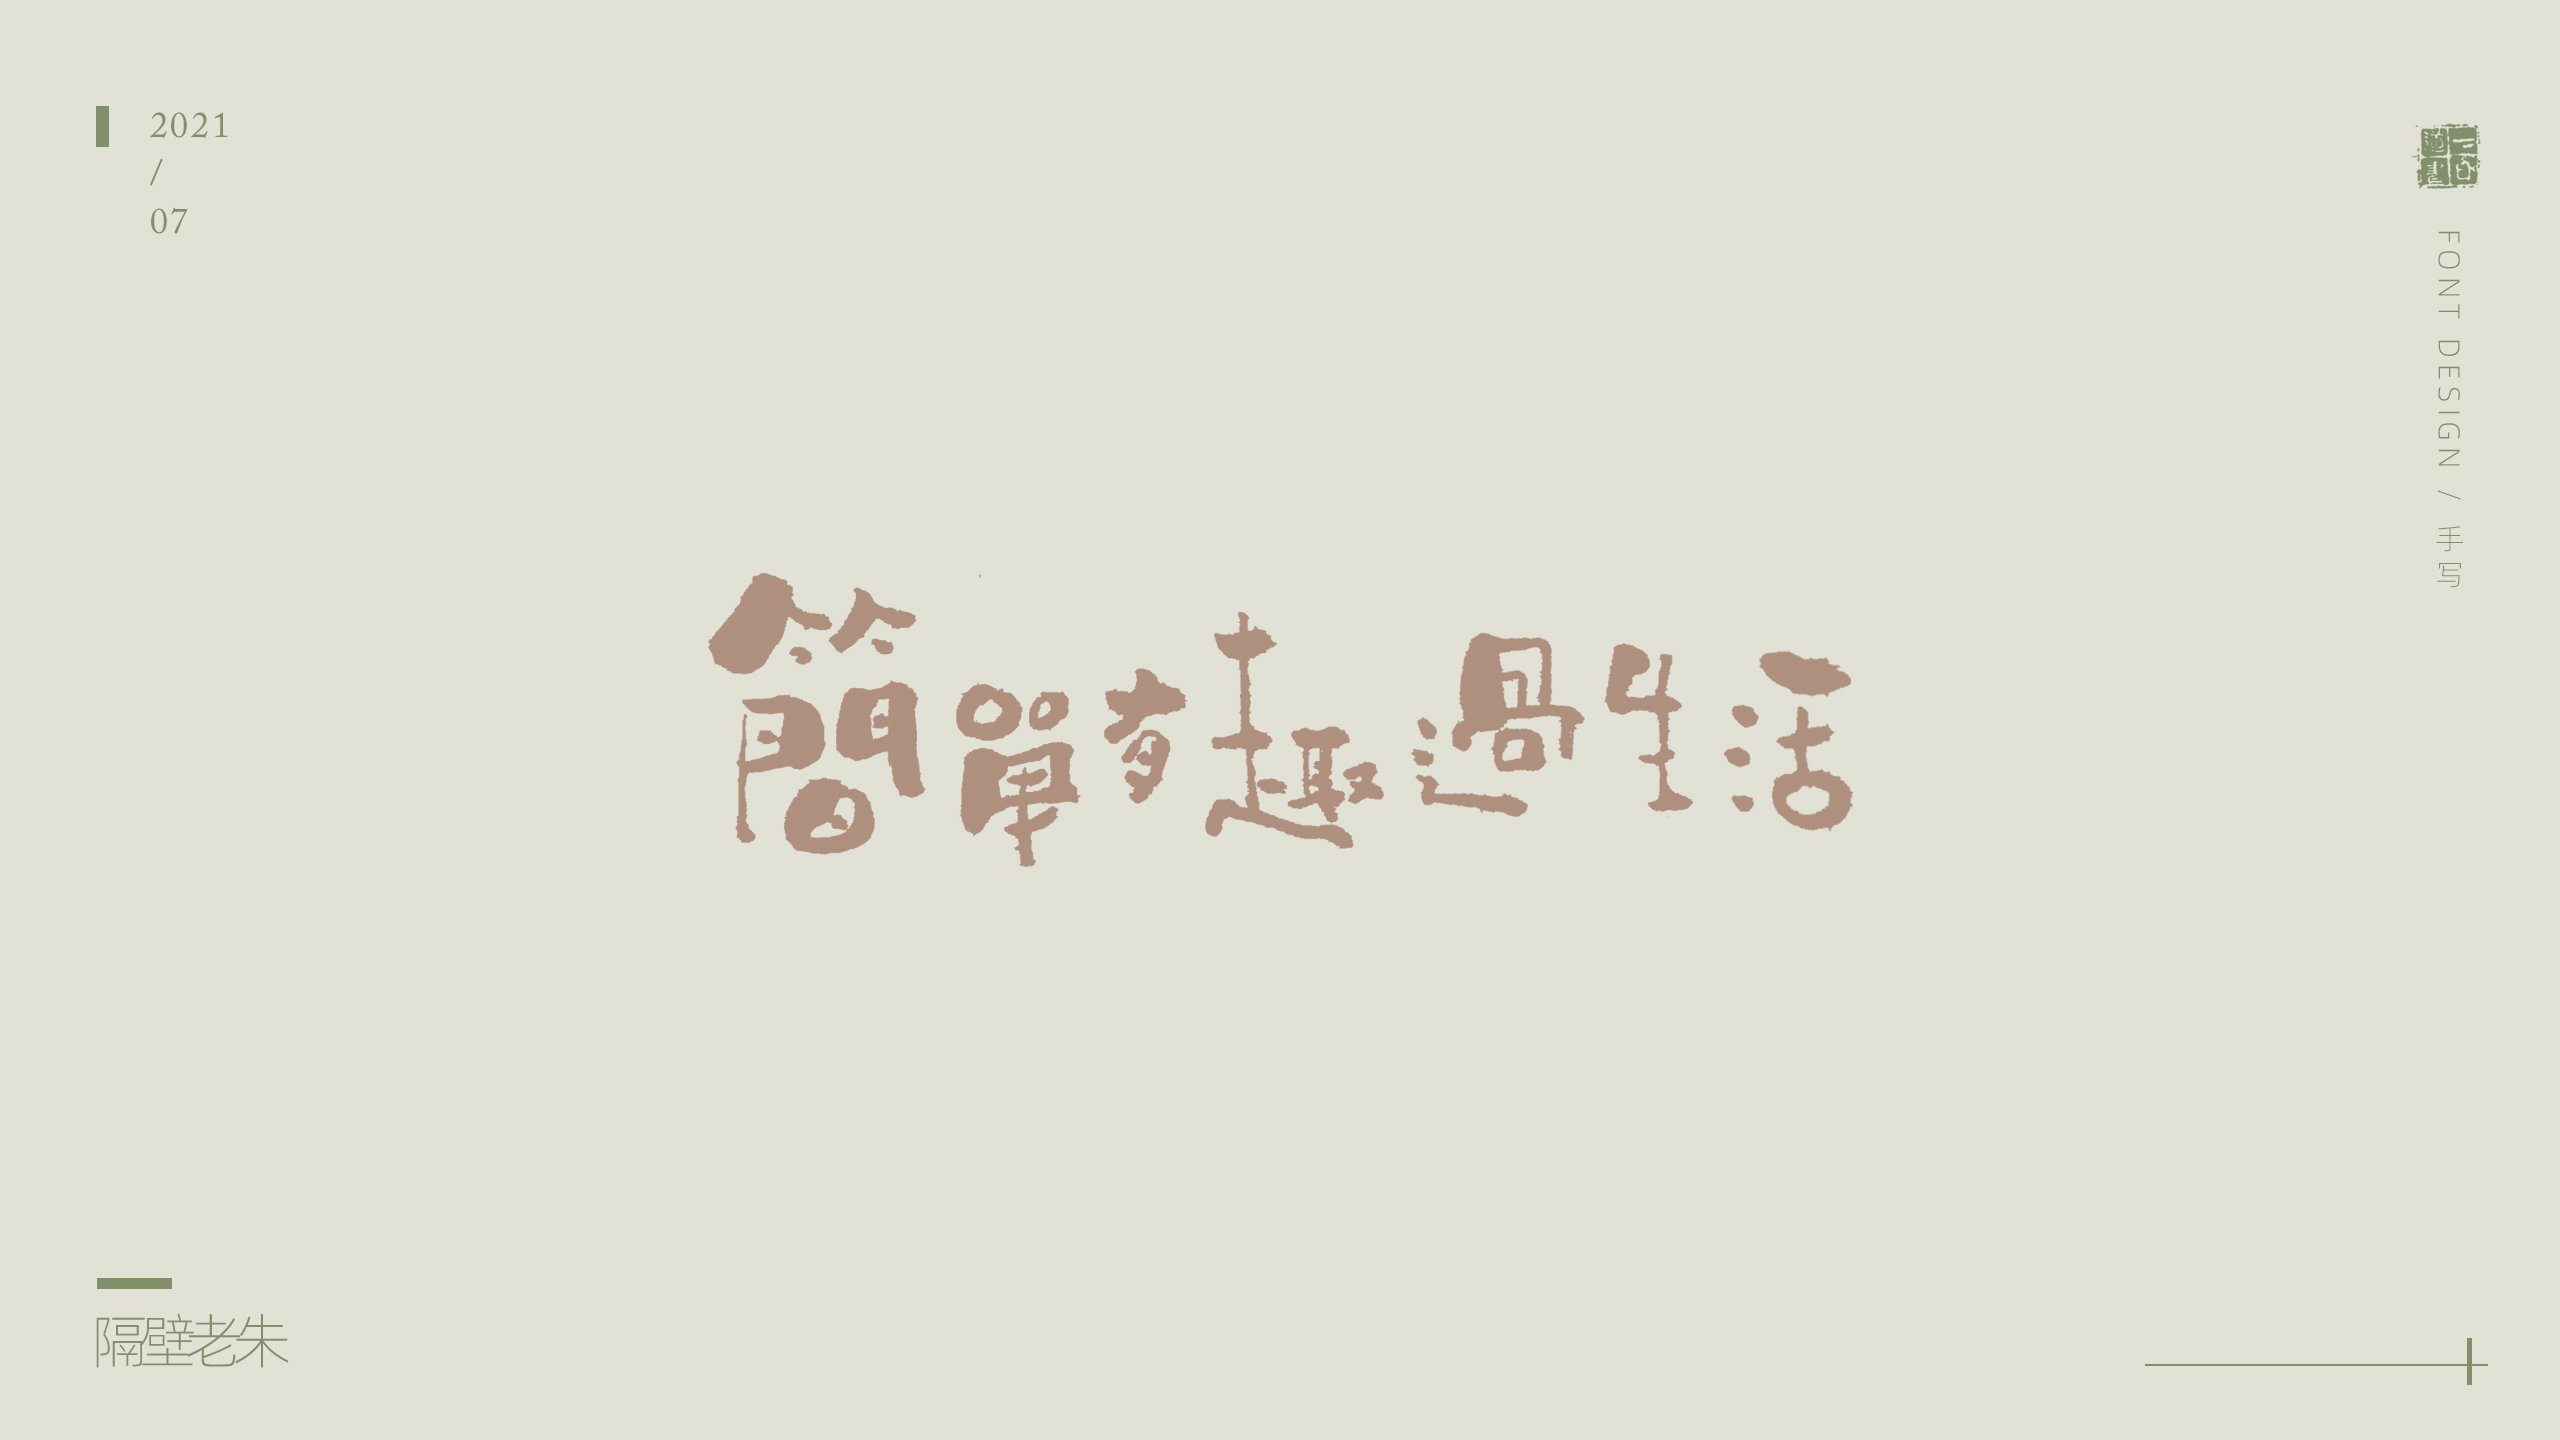 22P Collection of the latest Chinese font design schemes in 2021 #.281